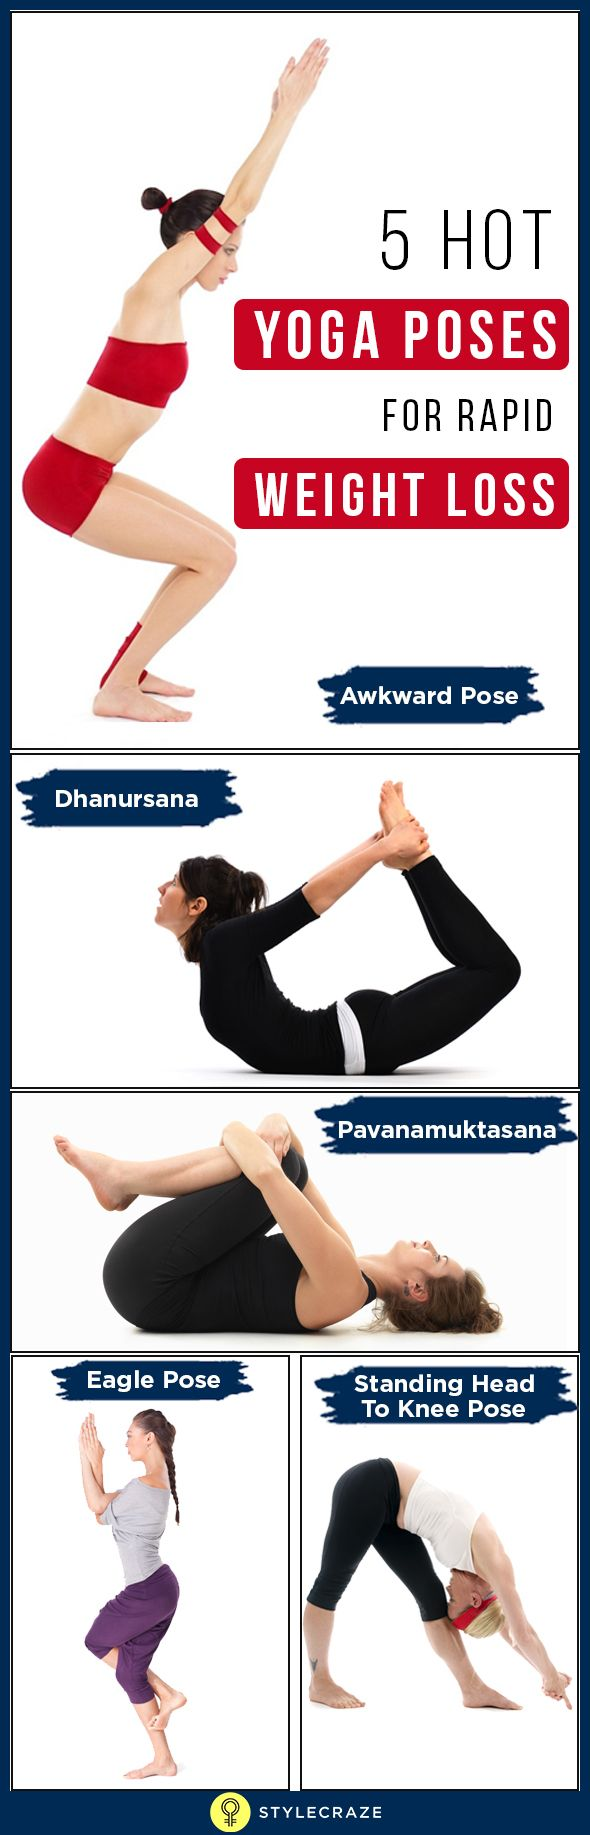 Best Yoga Exercises Ideas On Pinterest Yoga Abs Work - Best yoga posesasanas for quick weight loss